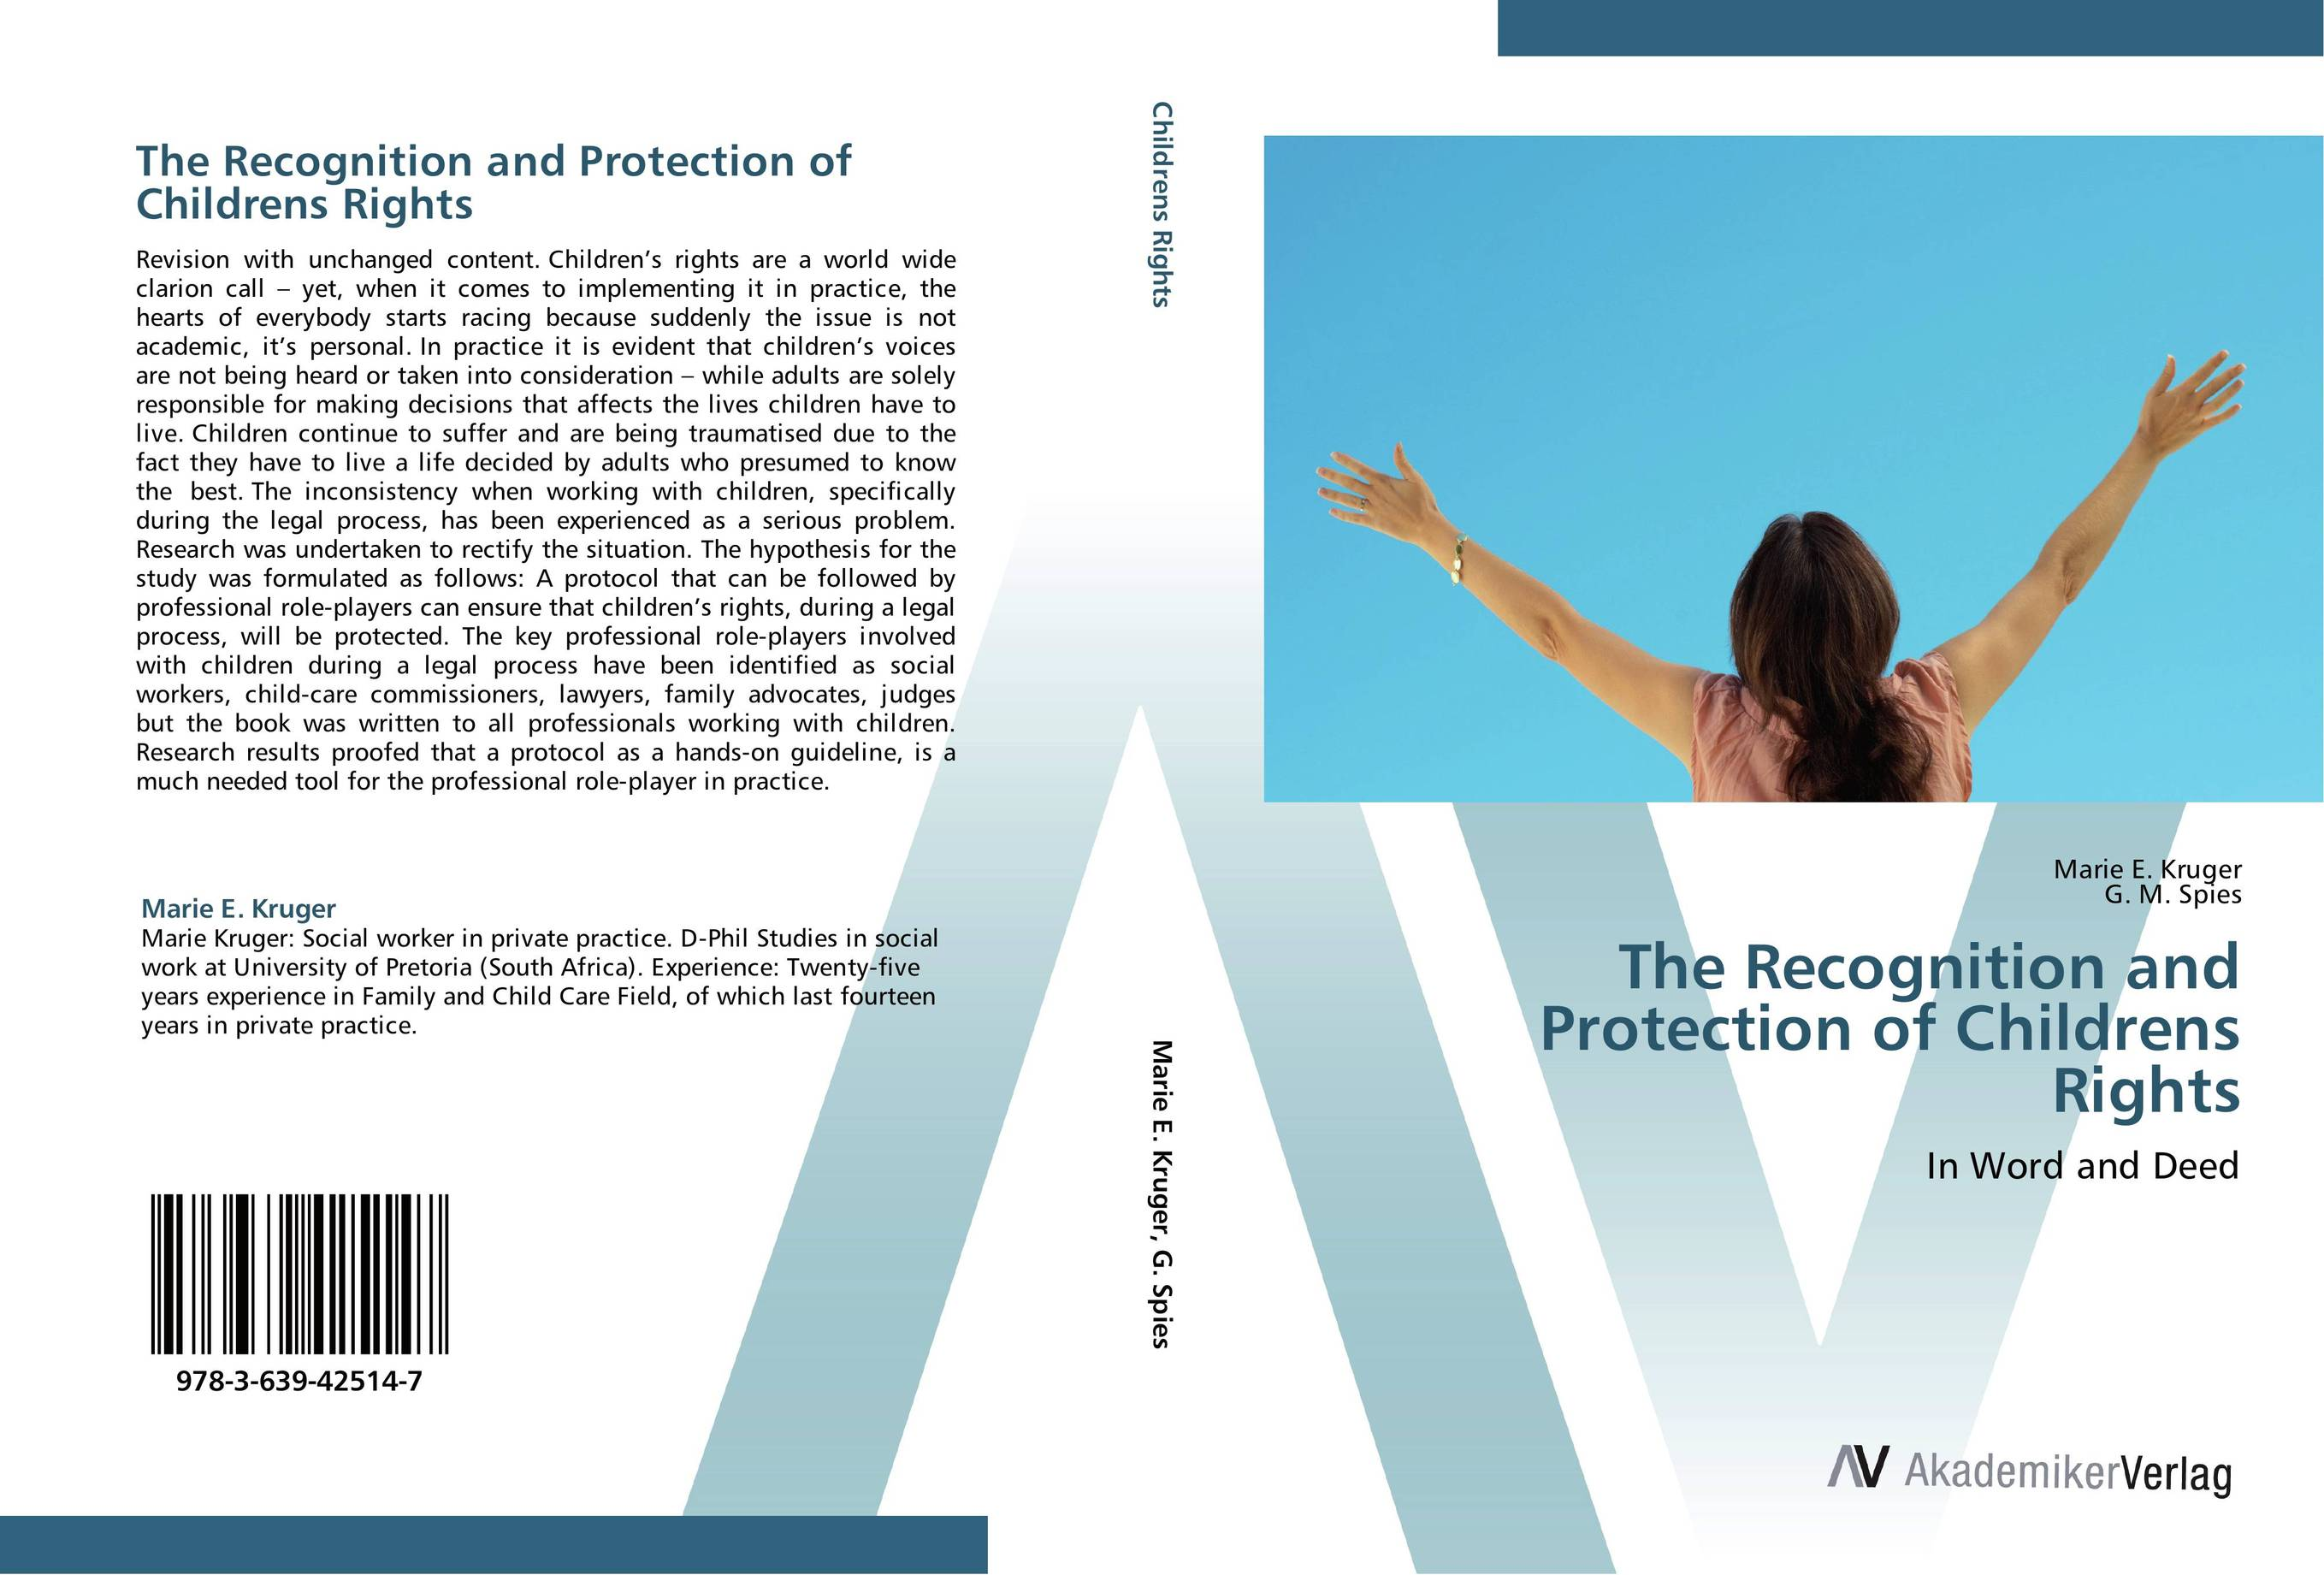 The Recognition and Protection of Childrens Rights the role of evaluation as a mechanism for advancing principal practice